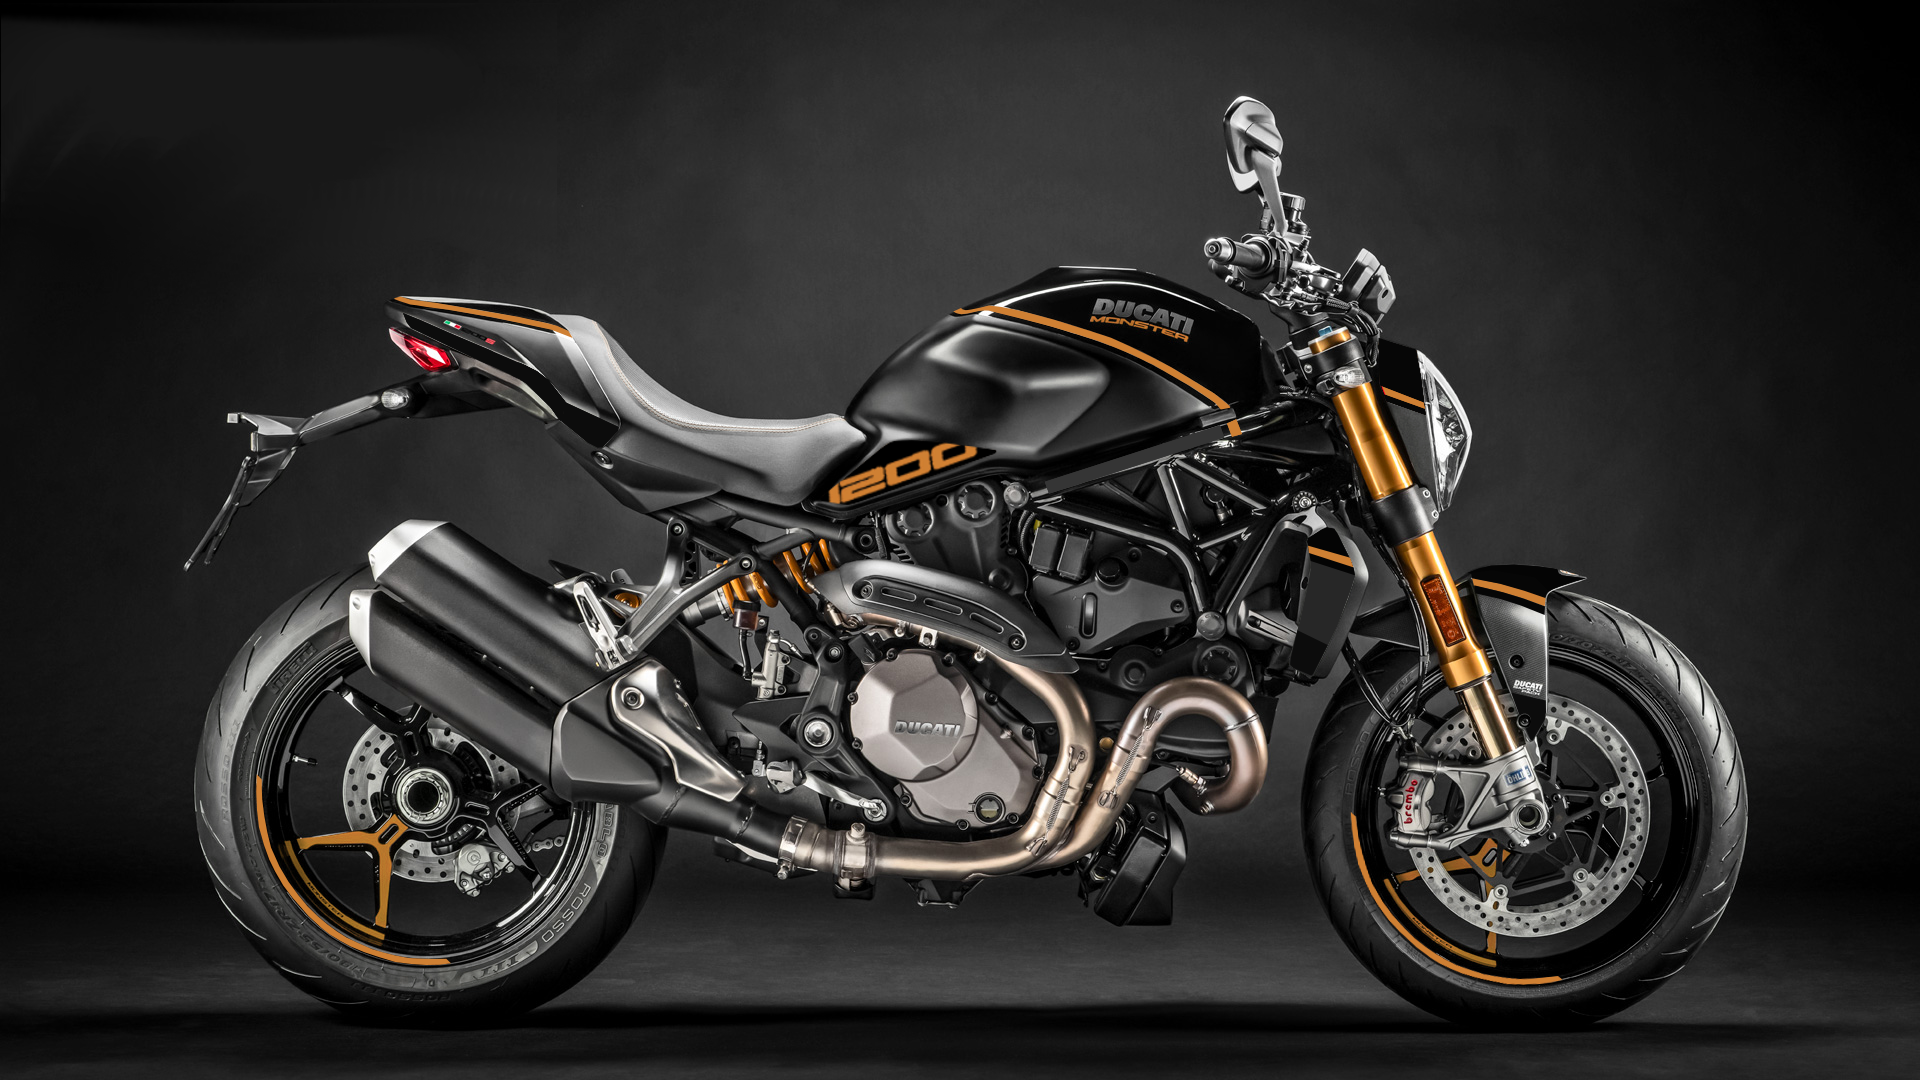 Foliendesign DUCATI  Monster 1200 Bj. 2020 Oylmpic Gold